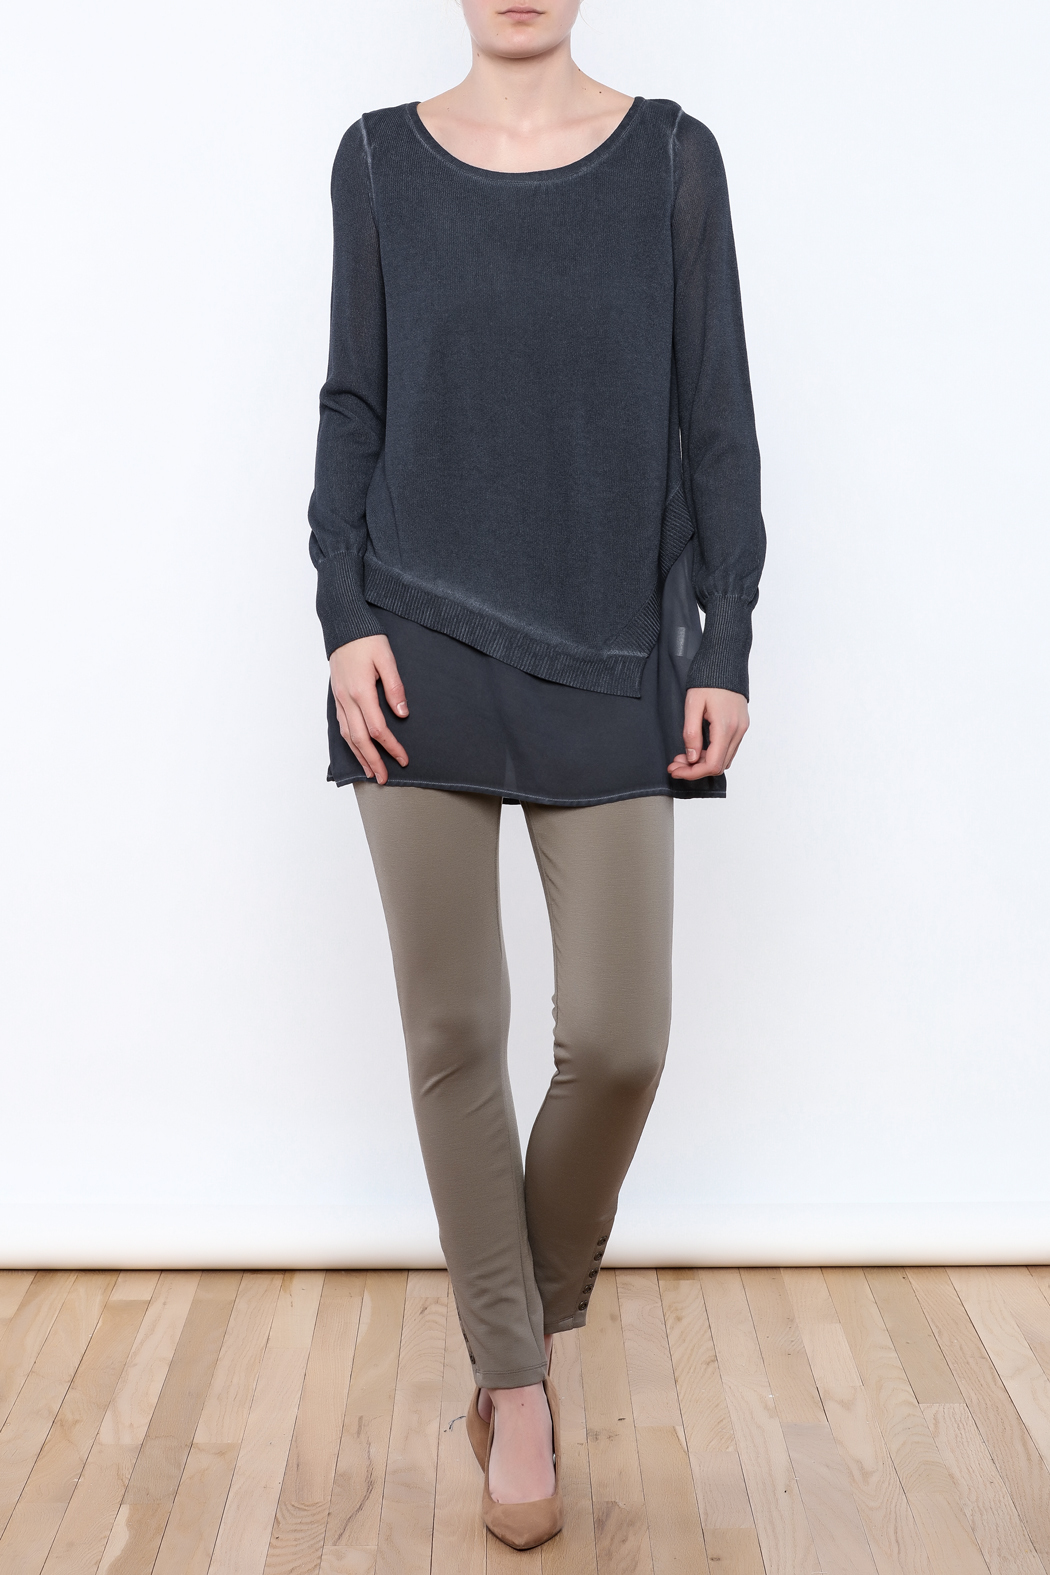 Yest Asymmetrical Knit Tunic - Front Full Image